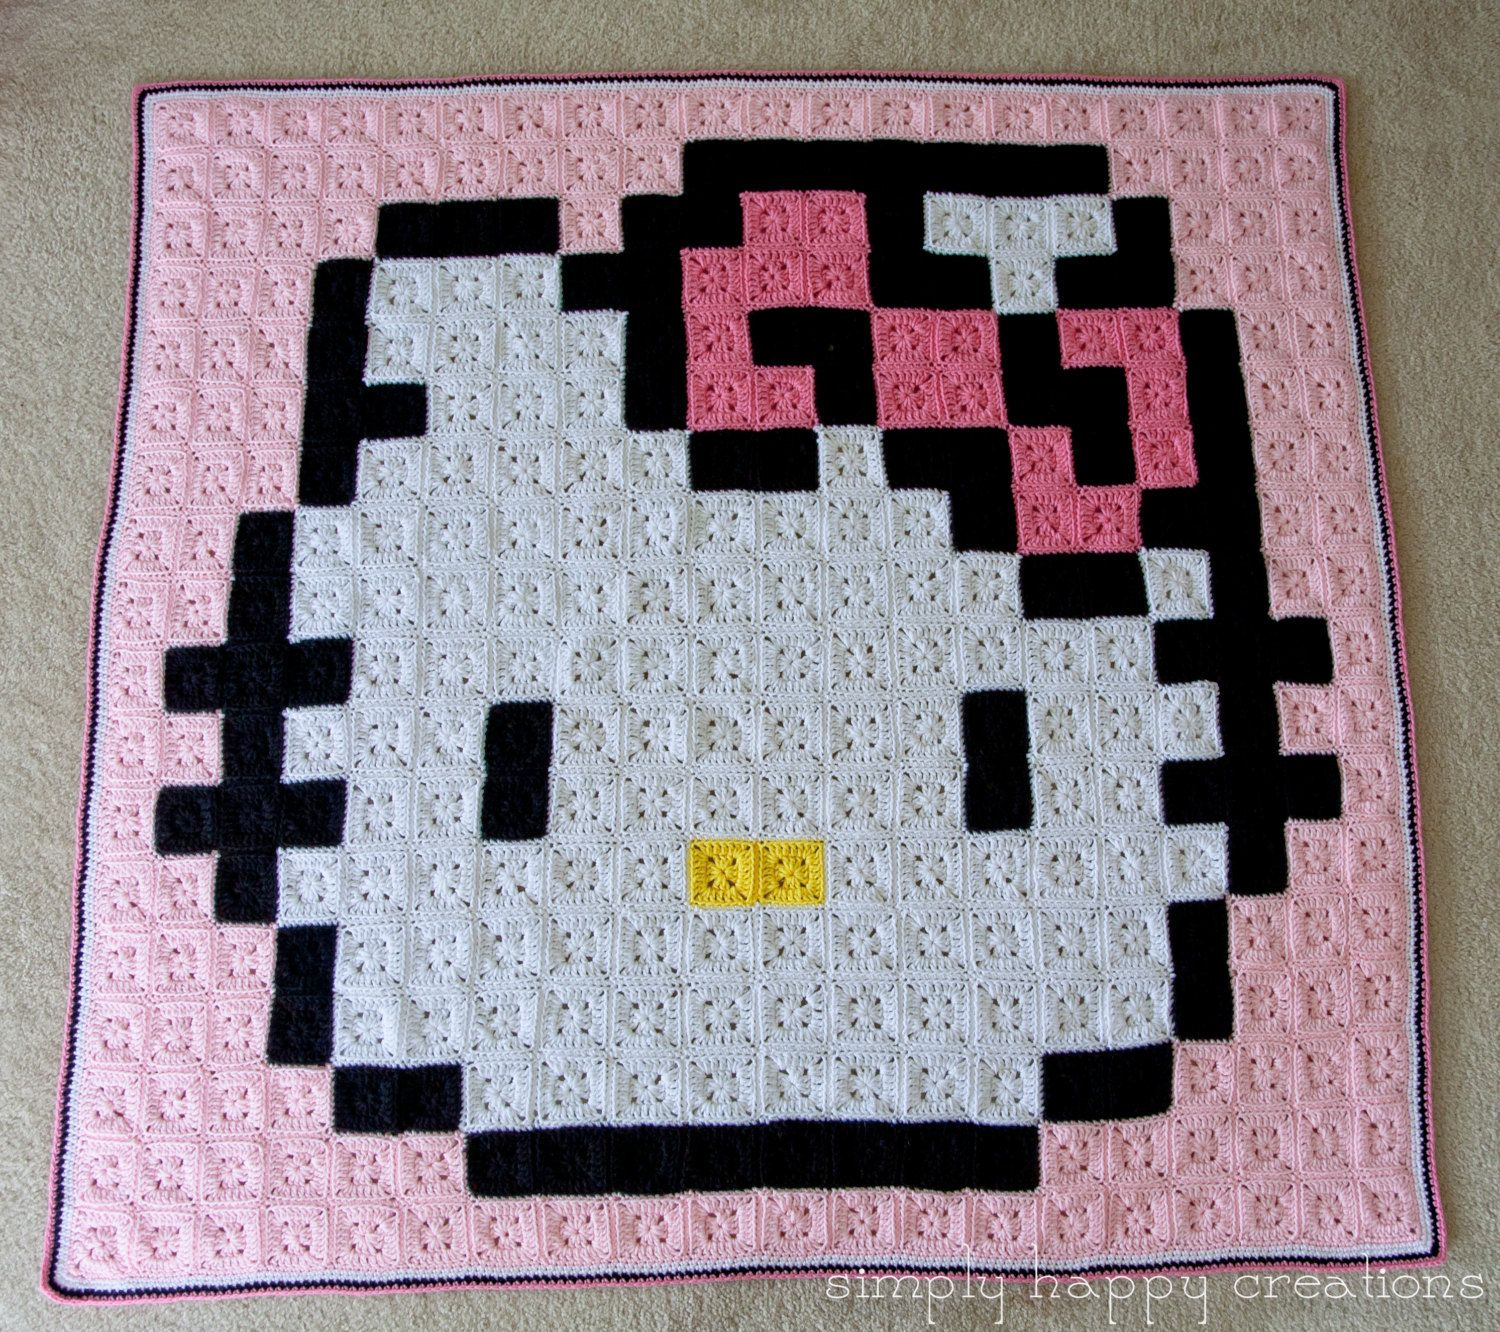 Made to order crochet 8 bit pixel art kawaii throw blanket made to order crochet 8 bit pixel art kawaii throw blanket inspired by hello kitty bankloansurffo Images